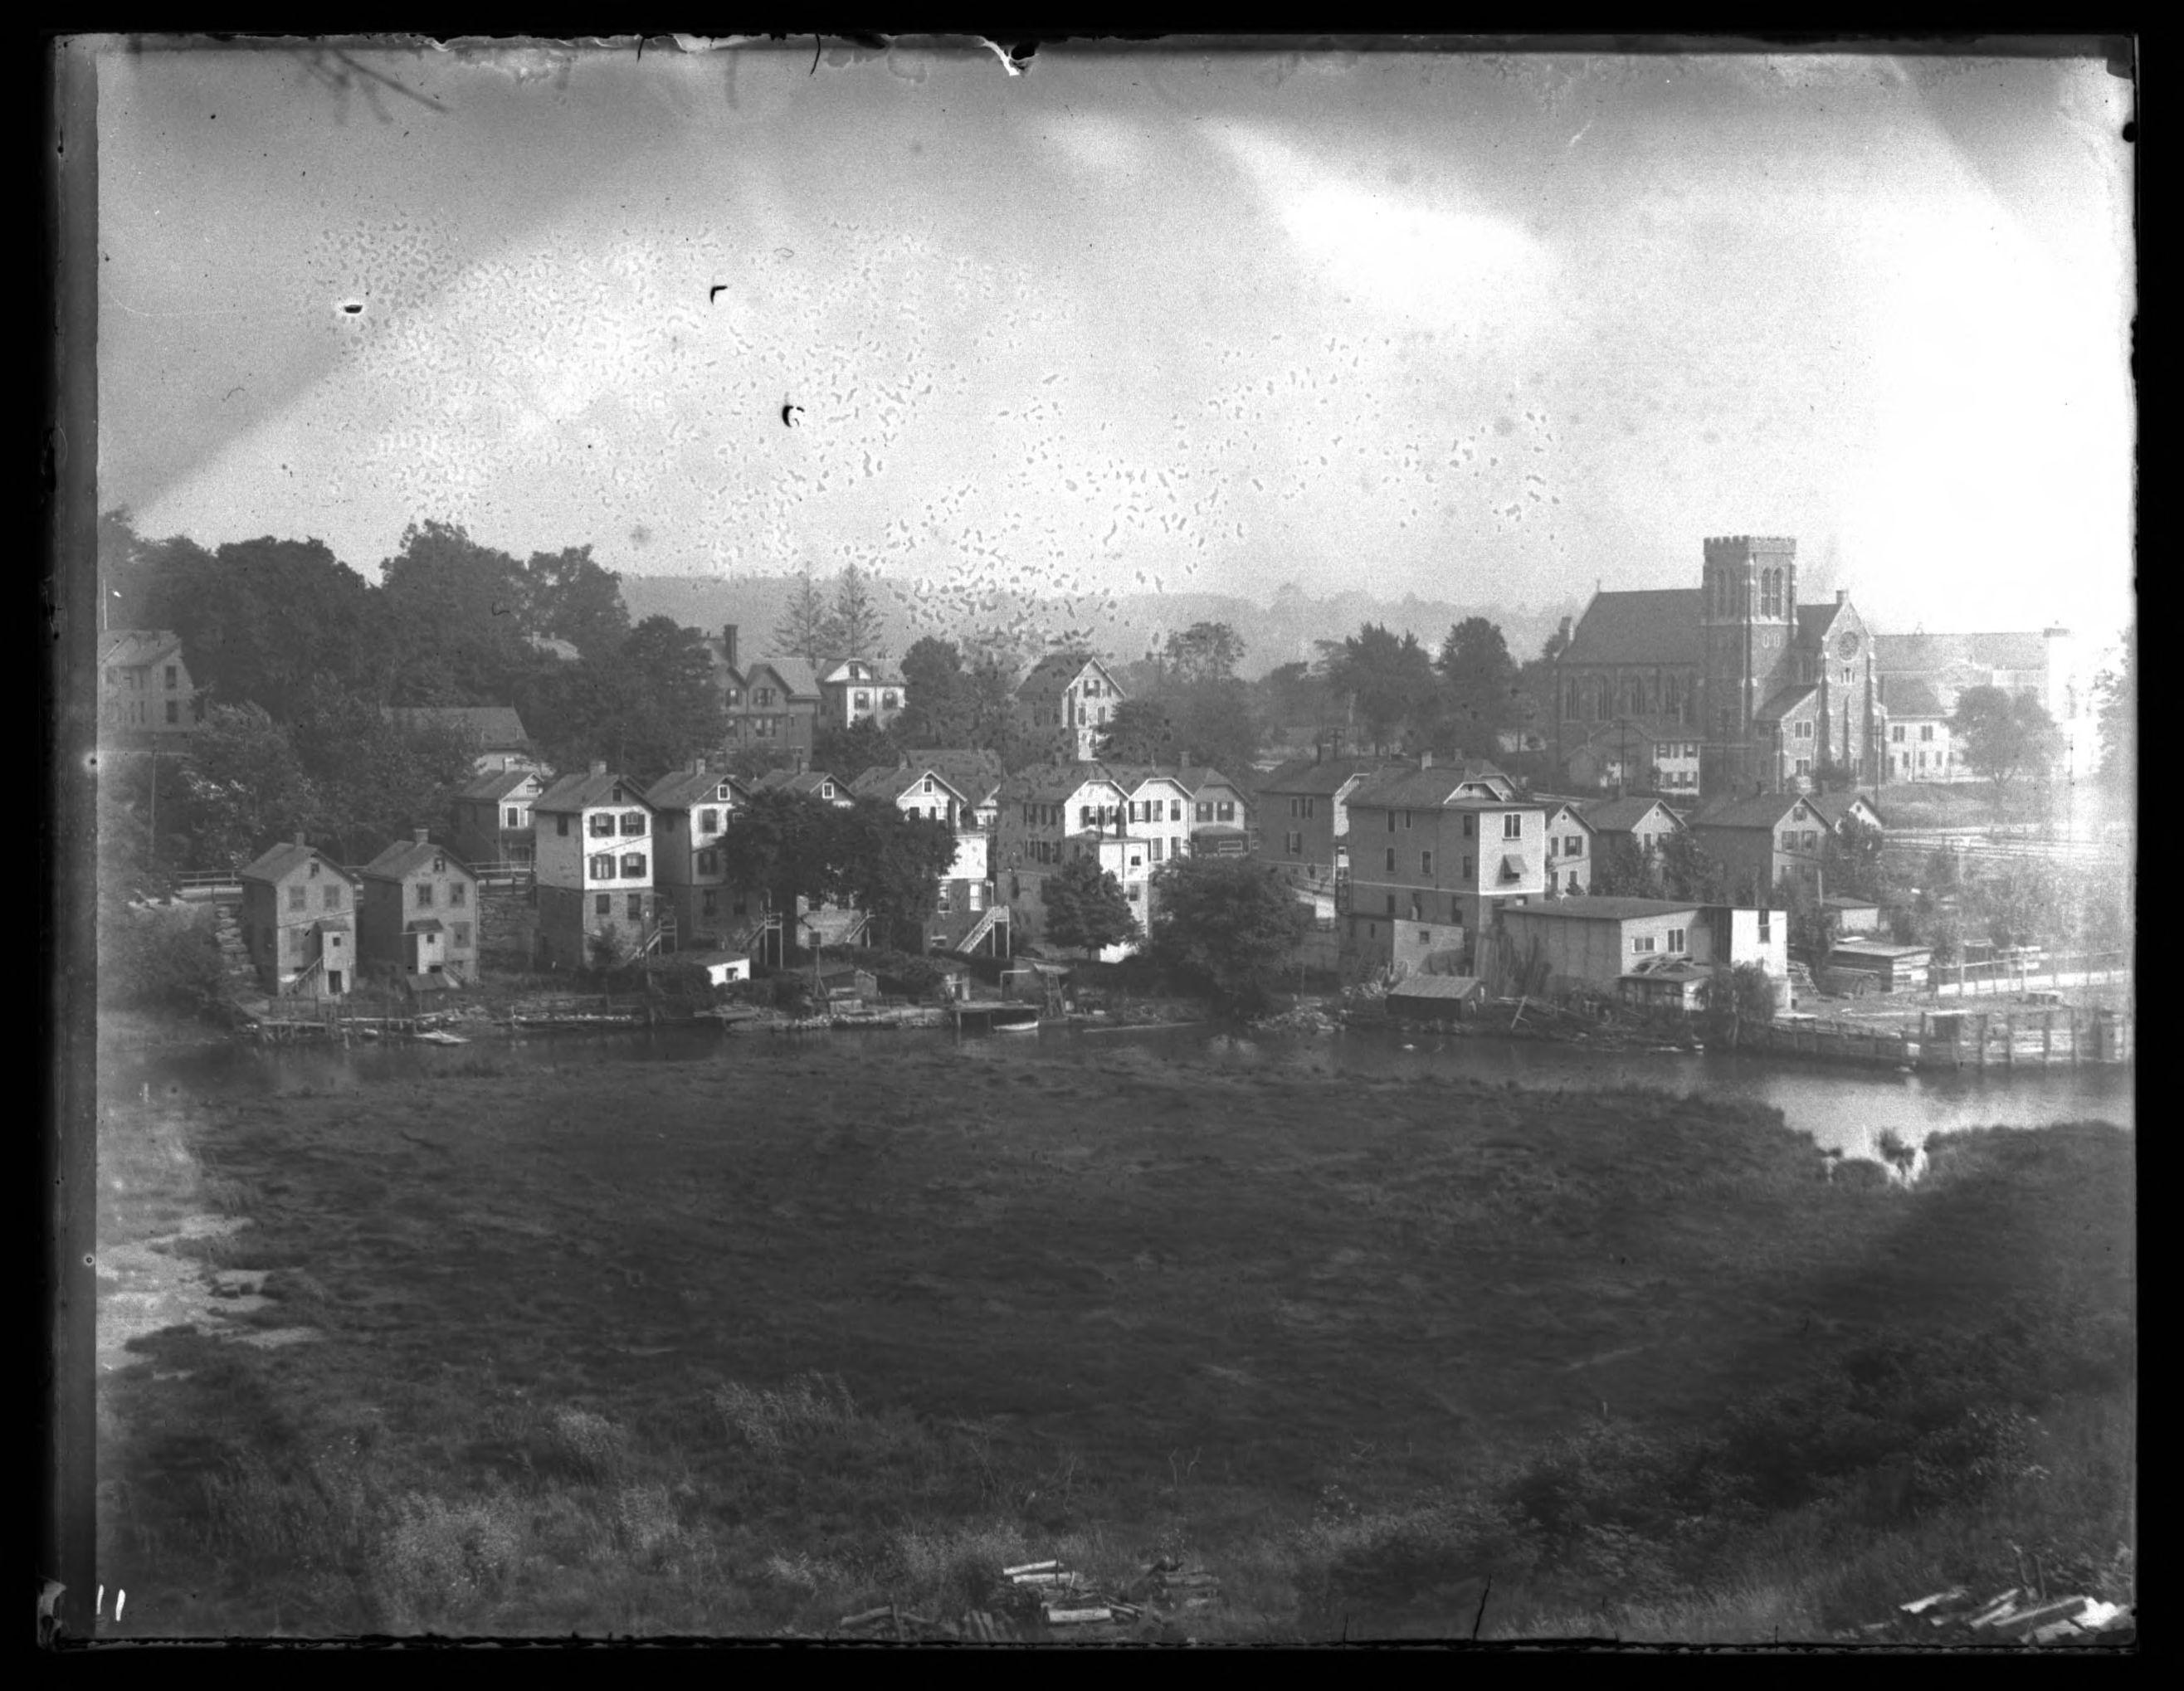 Tibbett's Brook, with the Church of the Mediator at right, Bronx, N.Y., undated (ca. 1915)